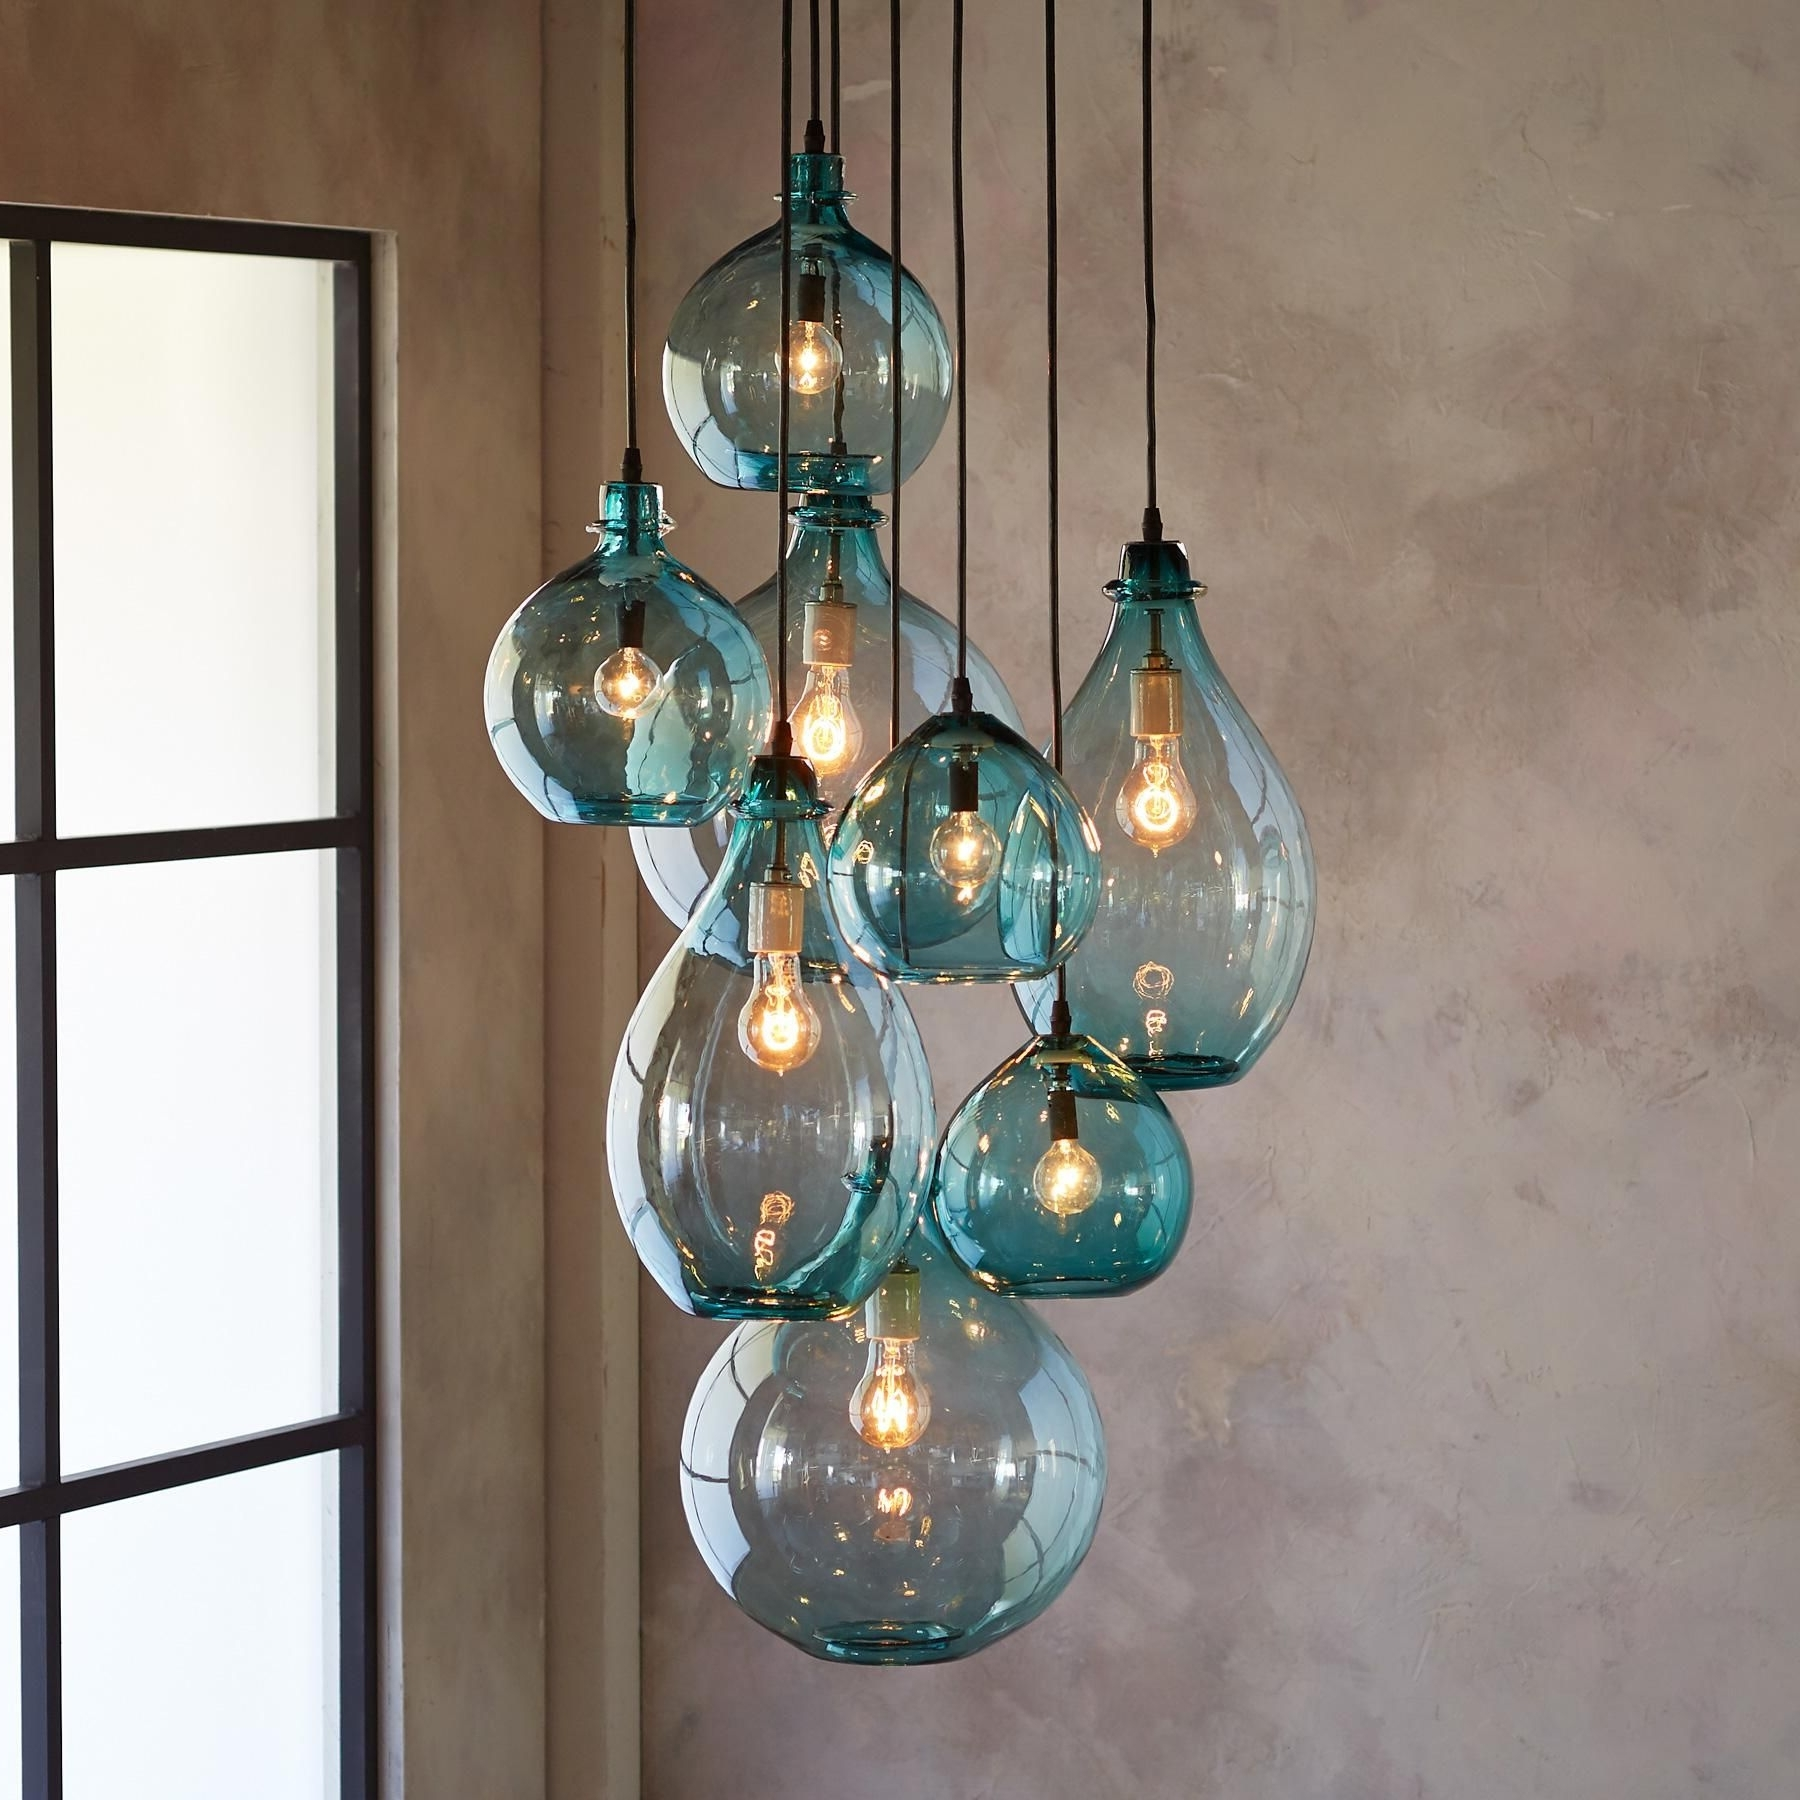 Salon Glass Pendant Canopy — Limpid Turquoise Drops Of Hand Blown In Popular Turquoise Ball Chandeliers (View 8 of 15)